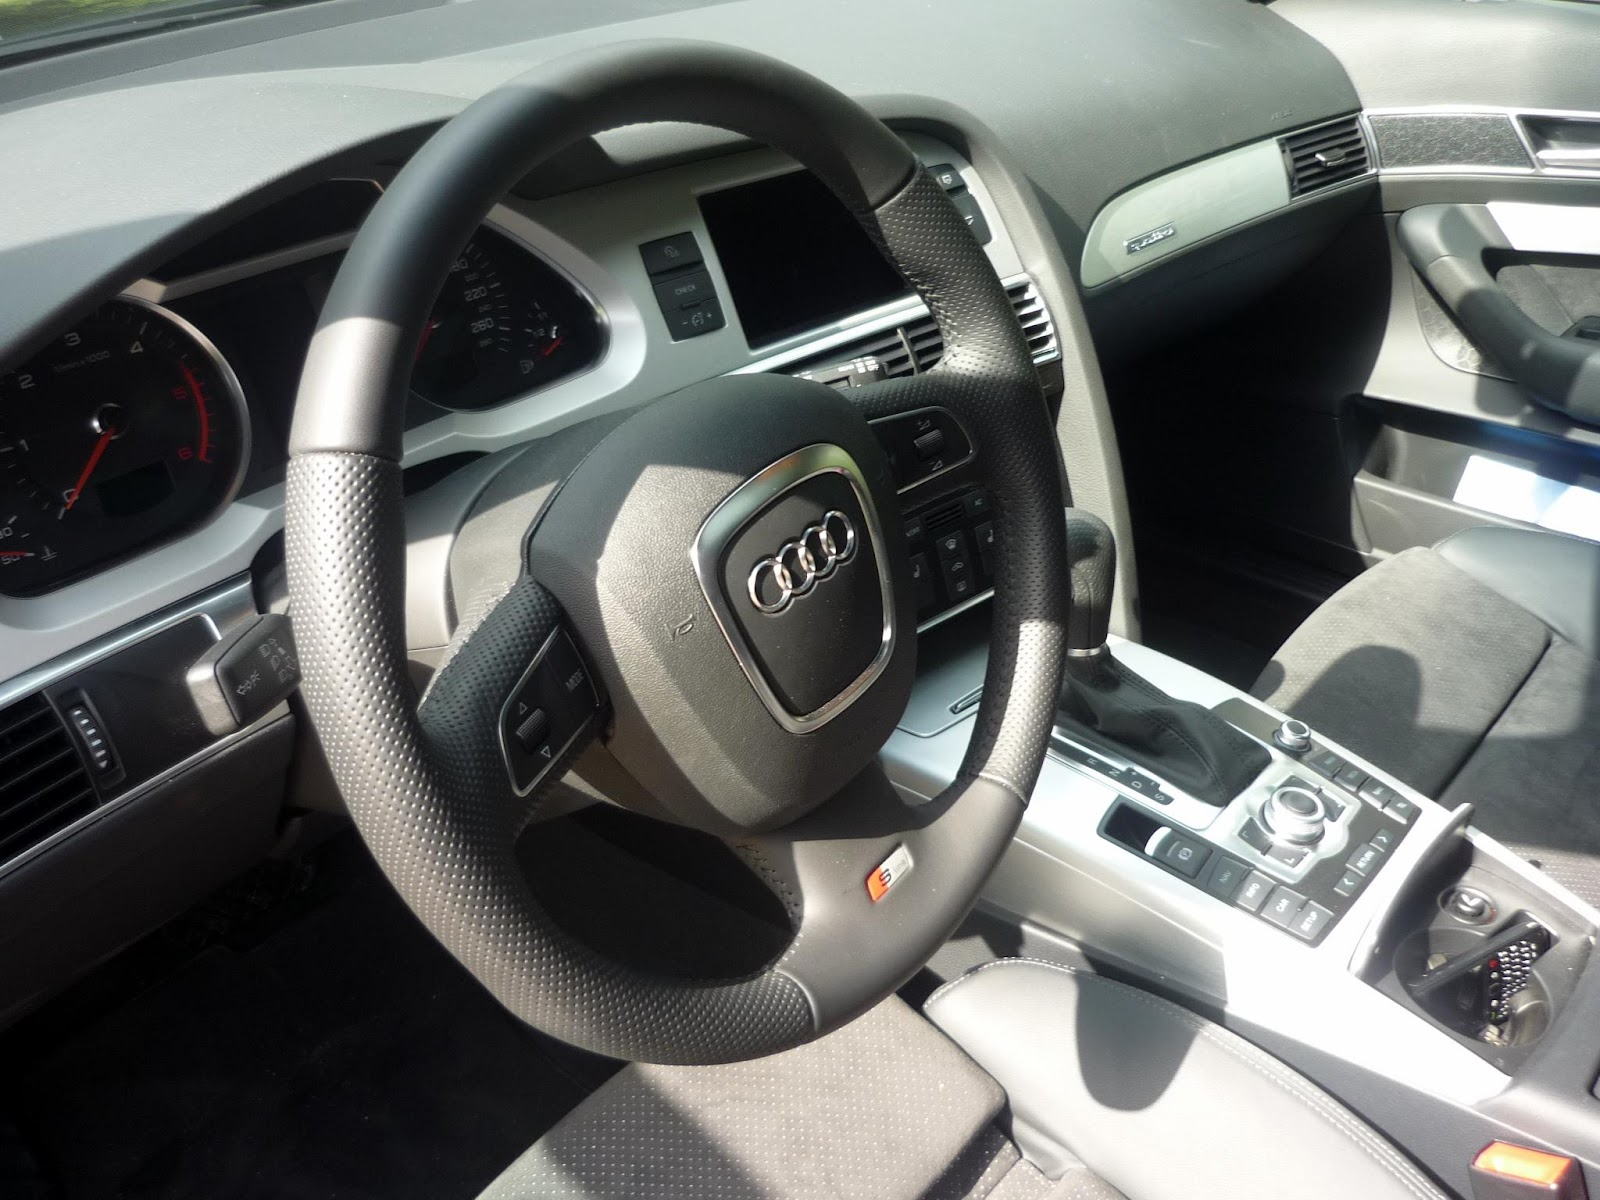 Guitigefilmpjes picture update audi a6 3 0 tdi avant s line for Audi a6 4f interieur